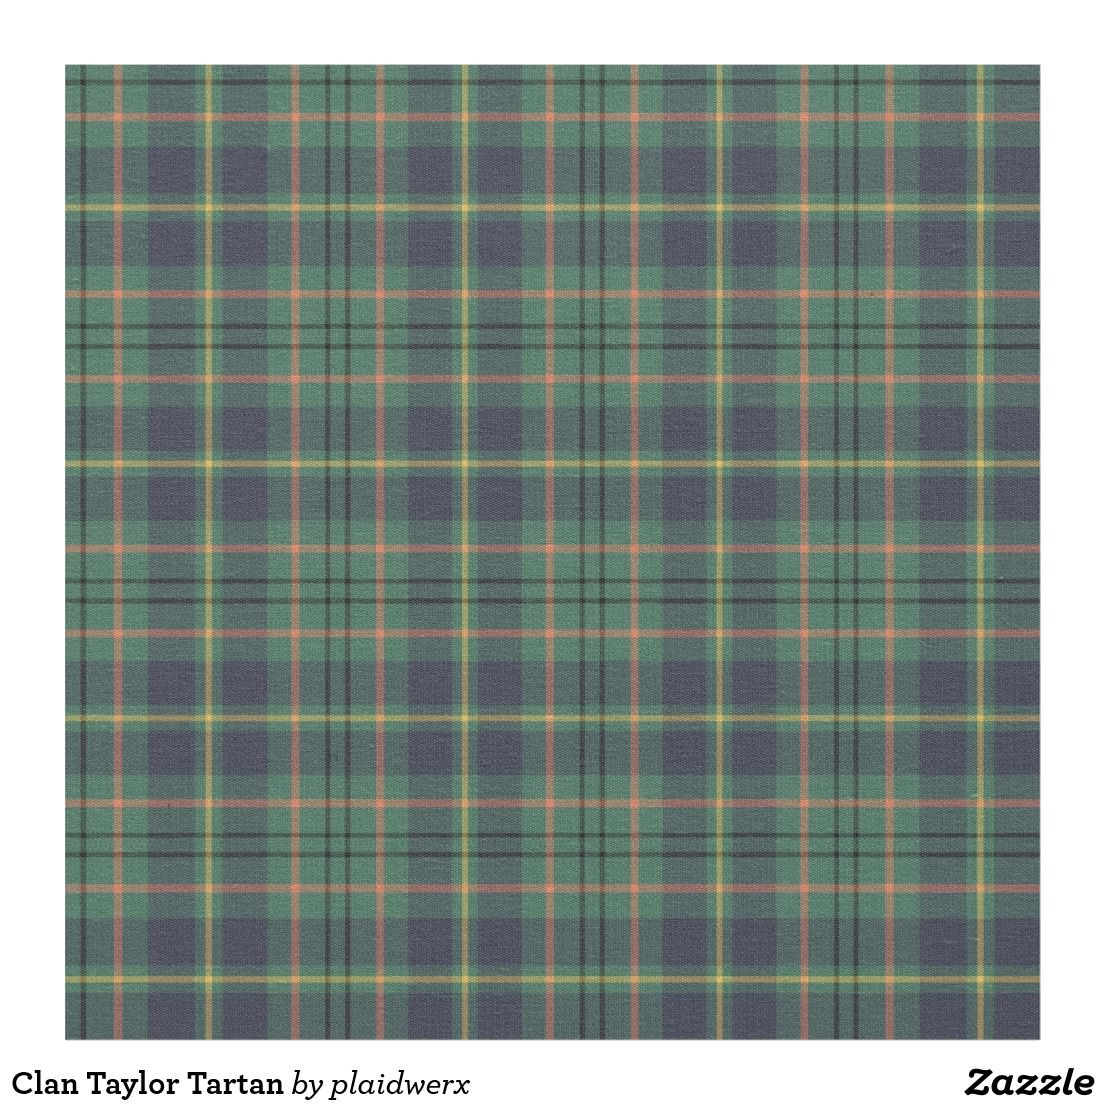 832b93e9a2 Fabric with the Clan Taylor tartan, dated to 1955. Traditional Scottish plaid  pattern in light green and navy blue, with light orange, yellow, and black  ...